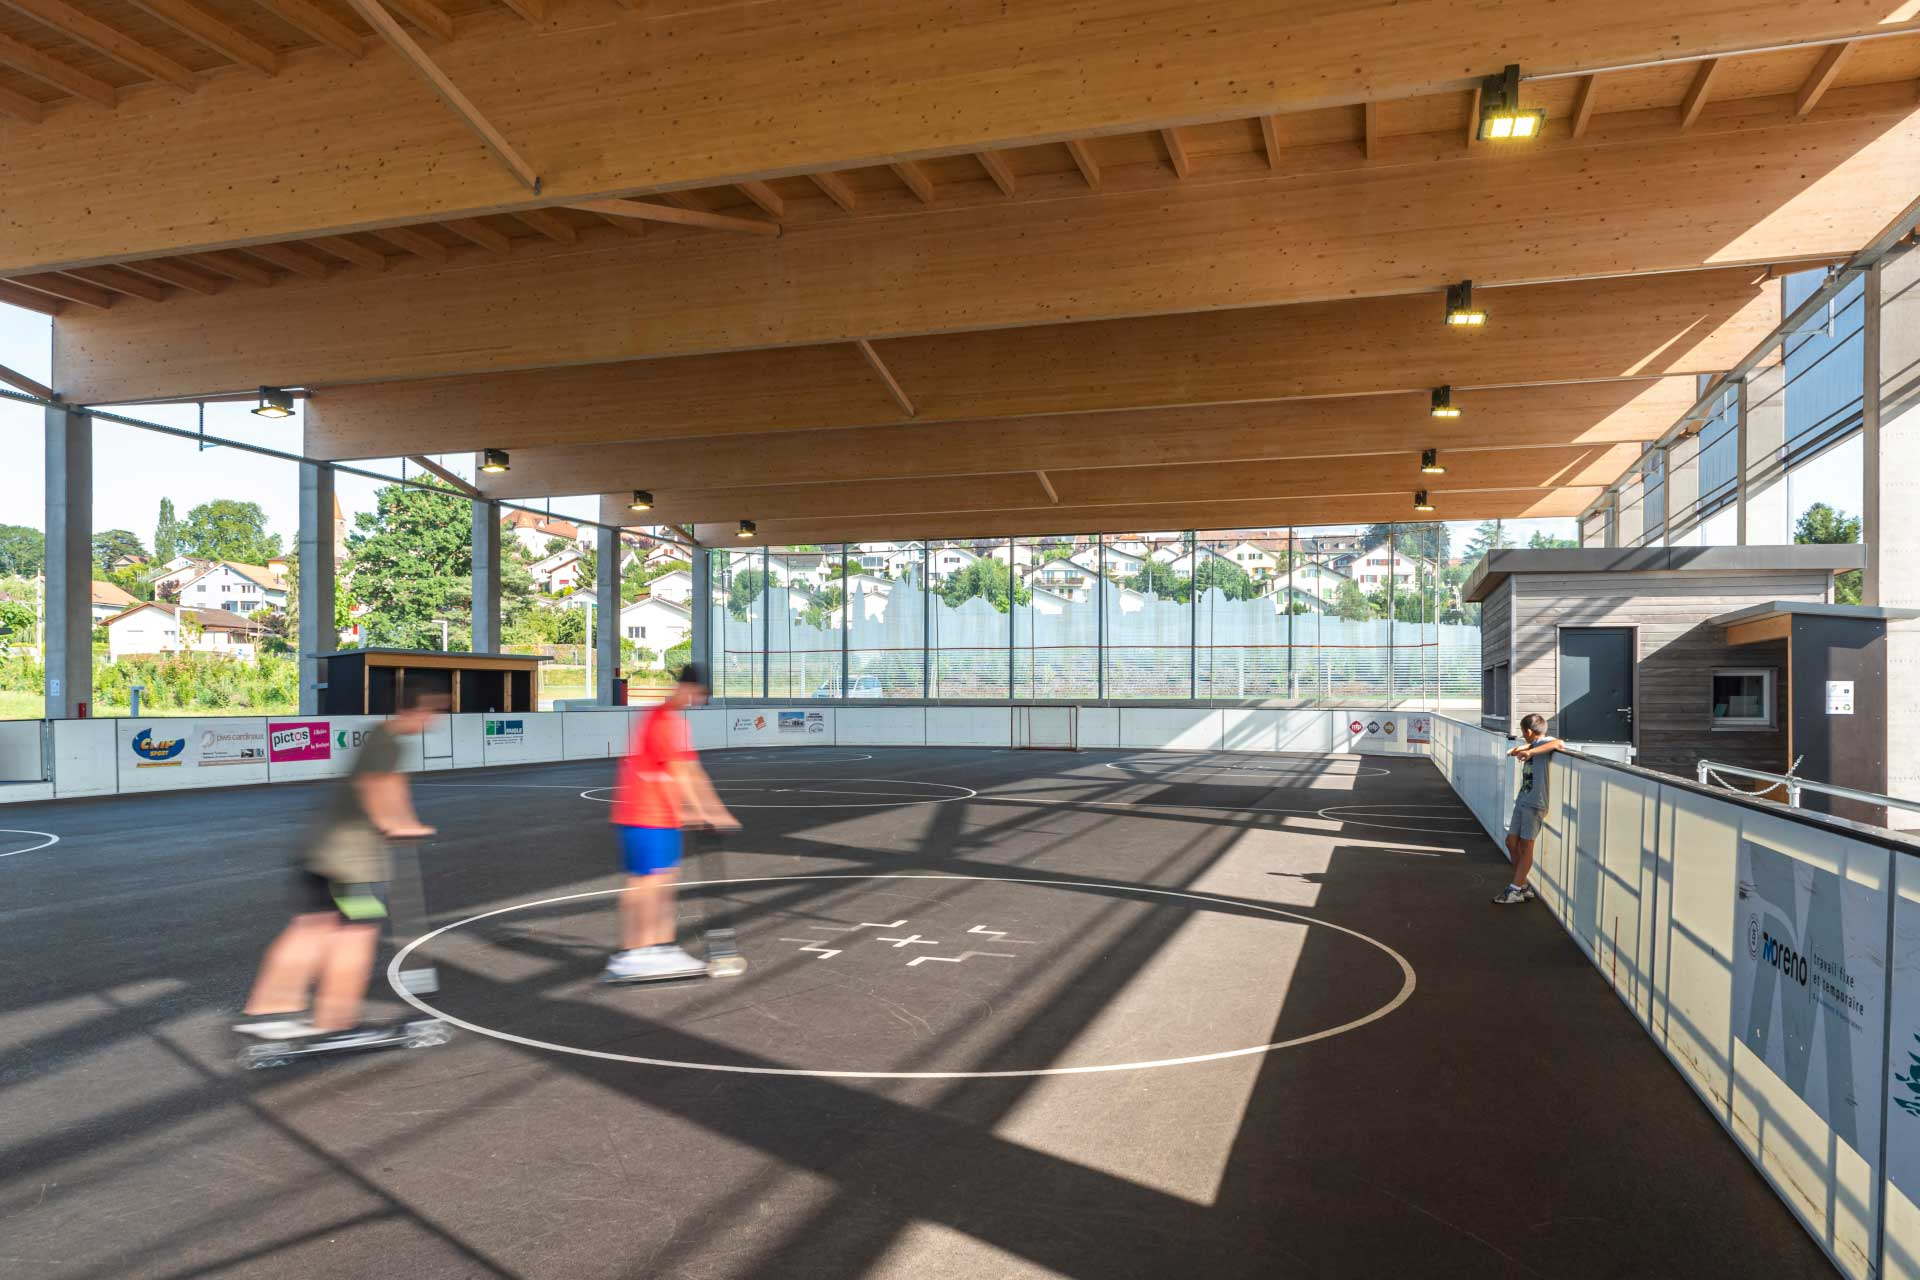 Schréder sports lighting solution creates a safe and pleasant ice rink by night so residents can skate away to their hearts content